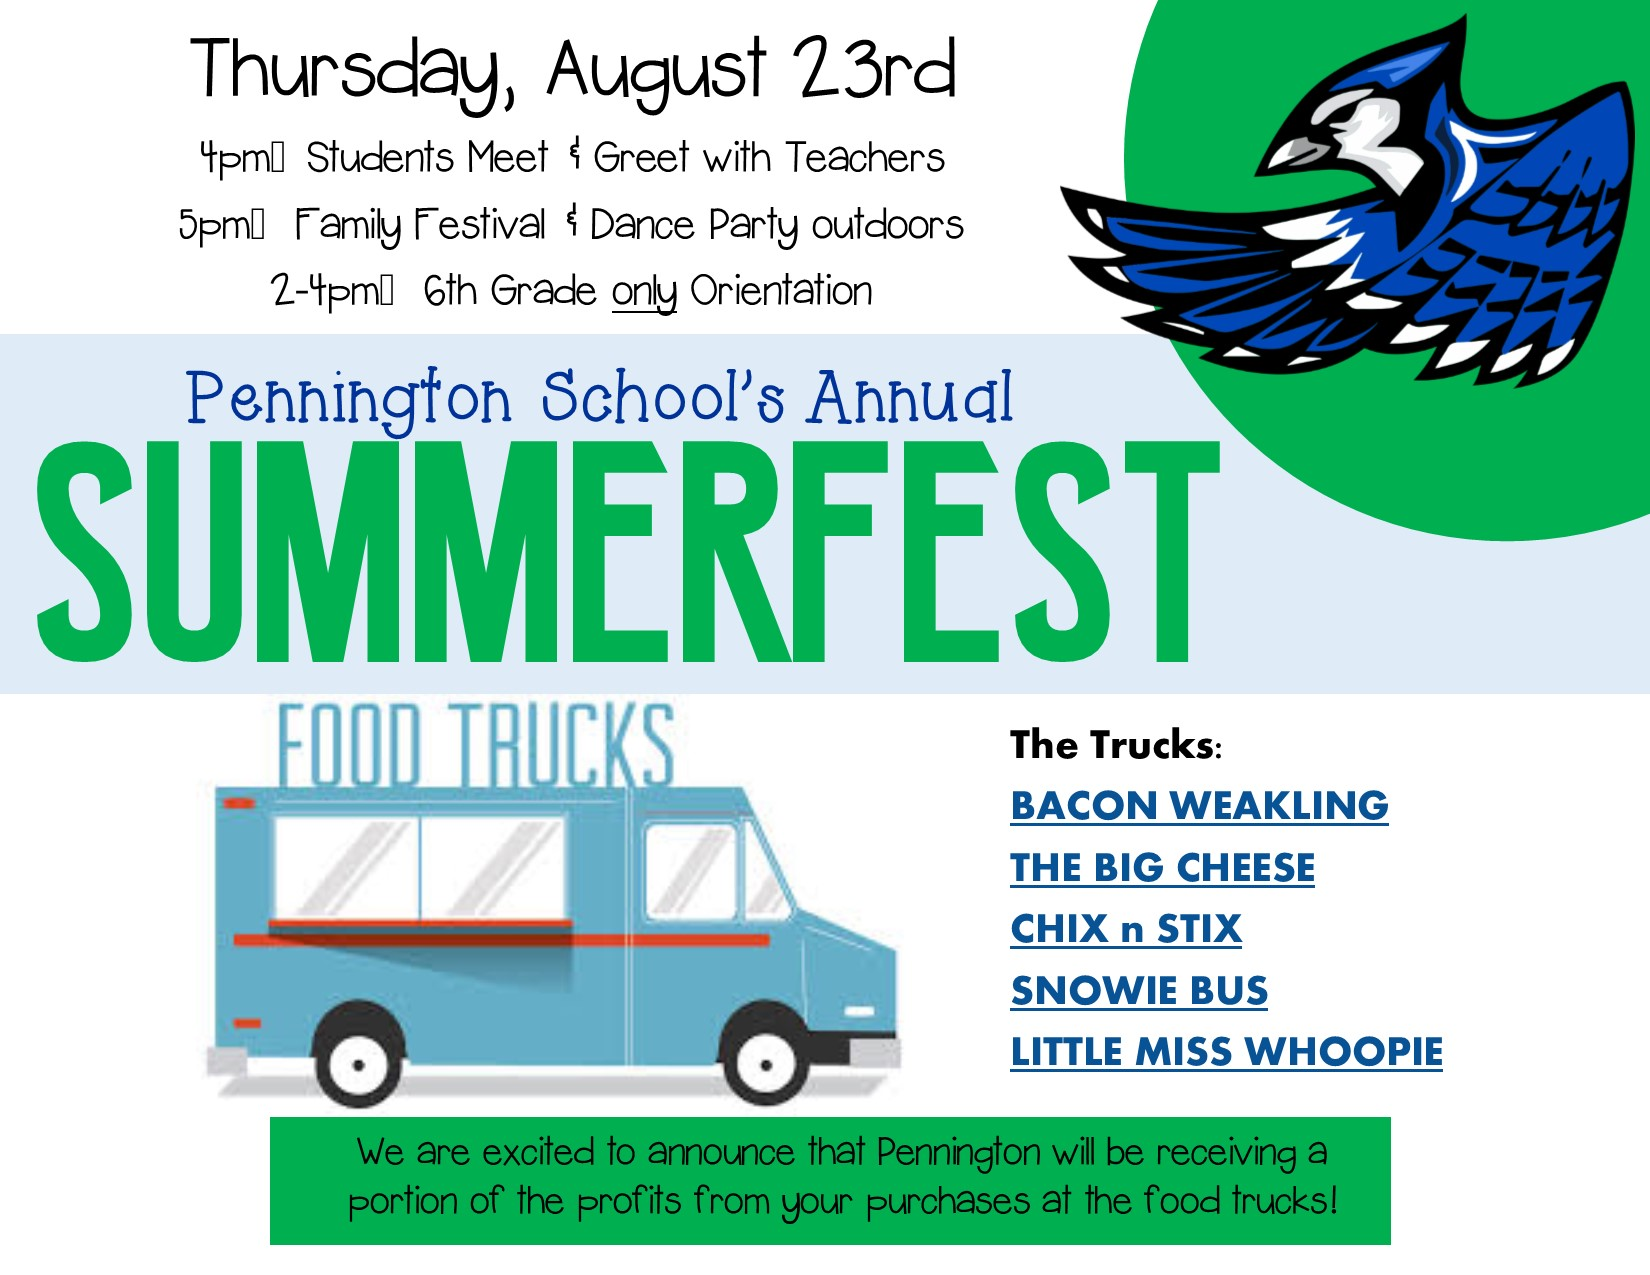 SummerFest 2018 on Thursday, August 23, with sixth grade orientation at 2:00 - 4:00, student-teacher meet and greet 4:00 - 5:00, and summerfest at 5:00.  Food is available for purchase from food trucks and a portion of the proceeds is being donated back to the school.